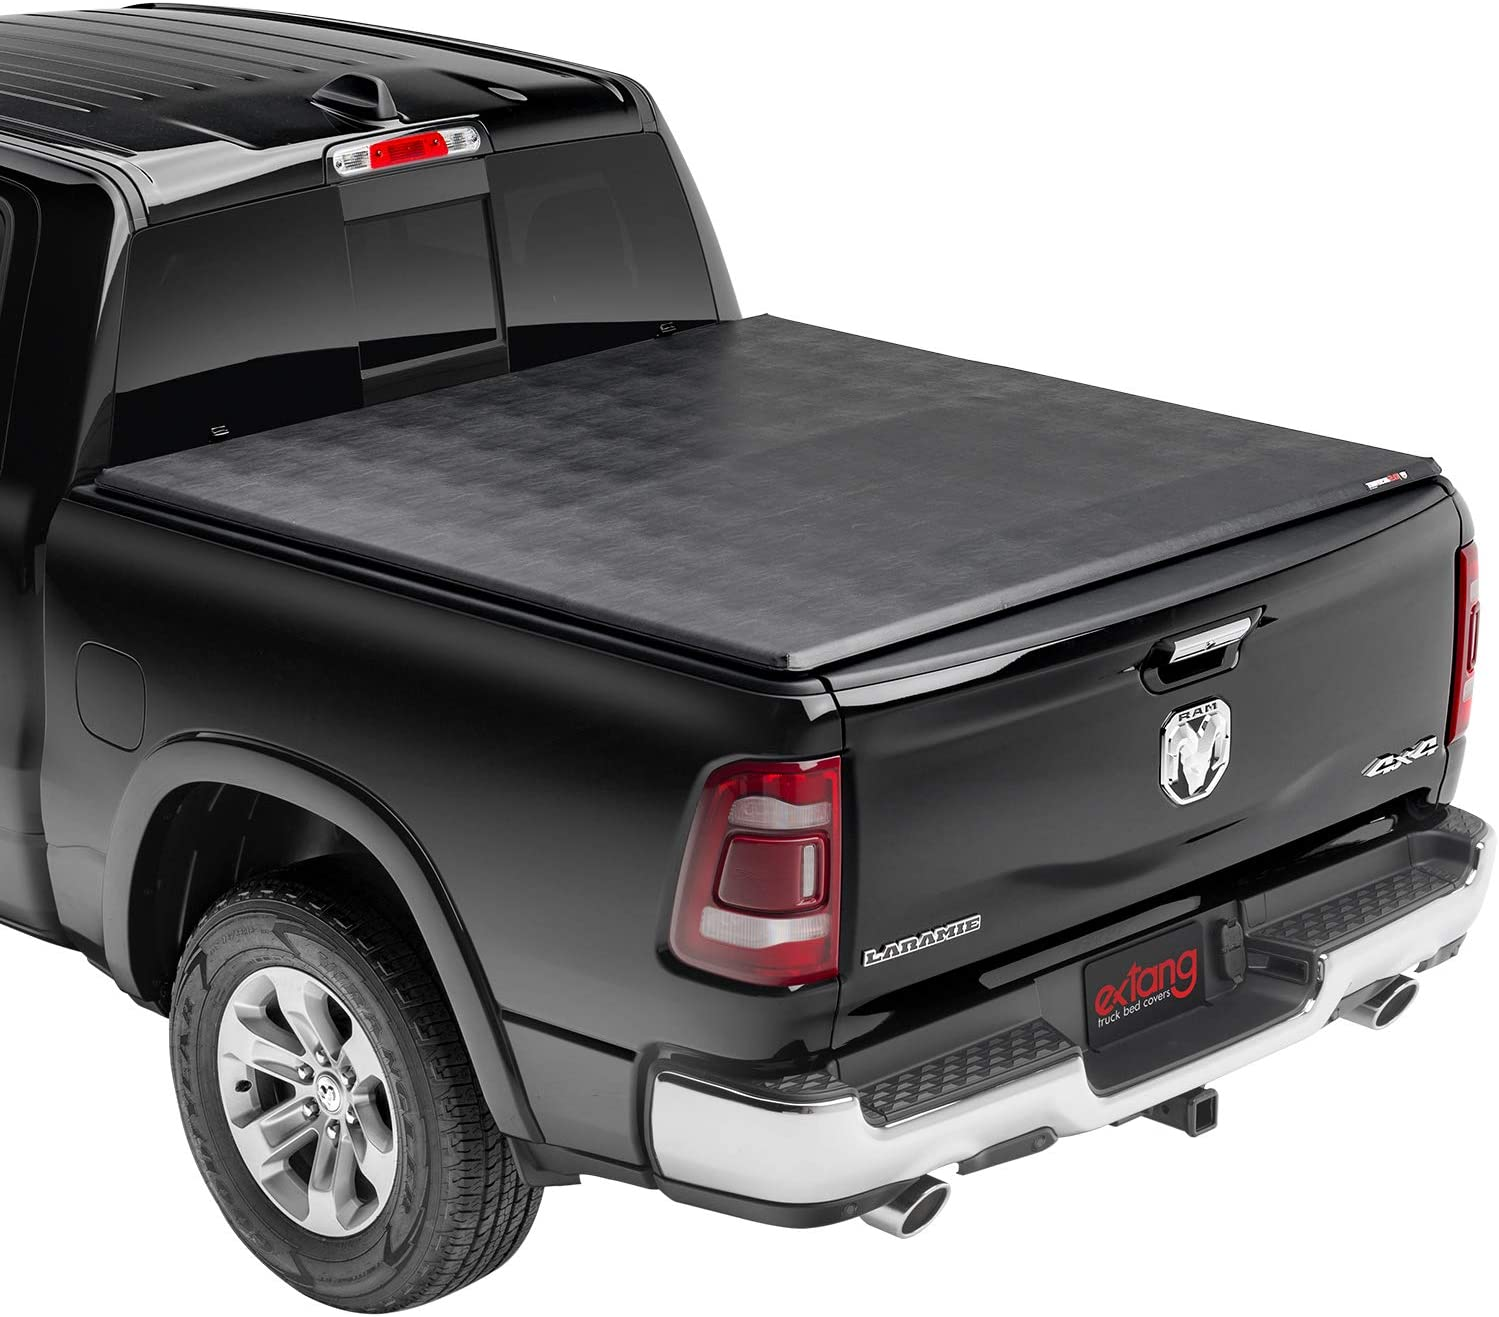 04-06 Extang 92850 Trifecta 2.0 Folding Tonneau Cover fits Tundra Crew Cab 6 ft 2 in